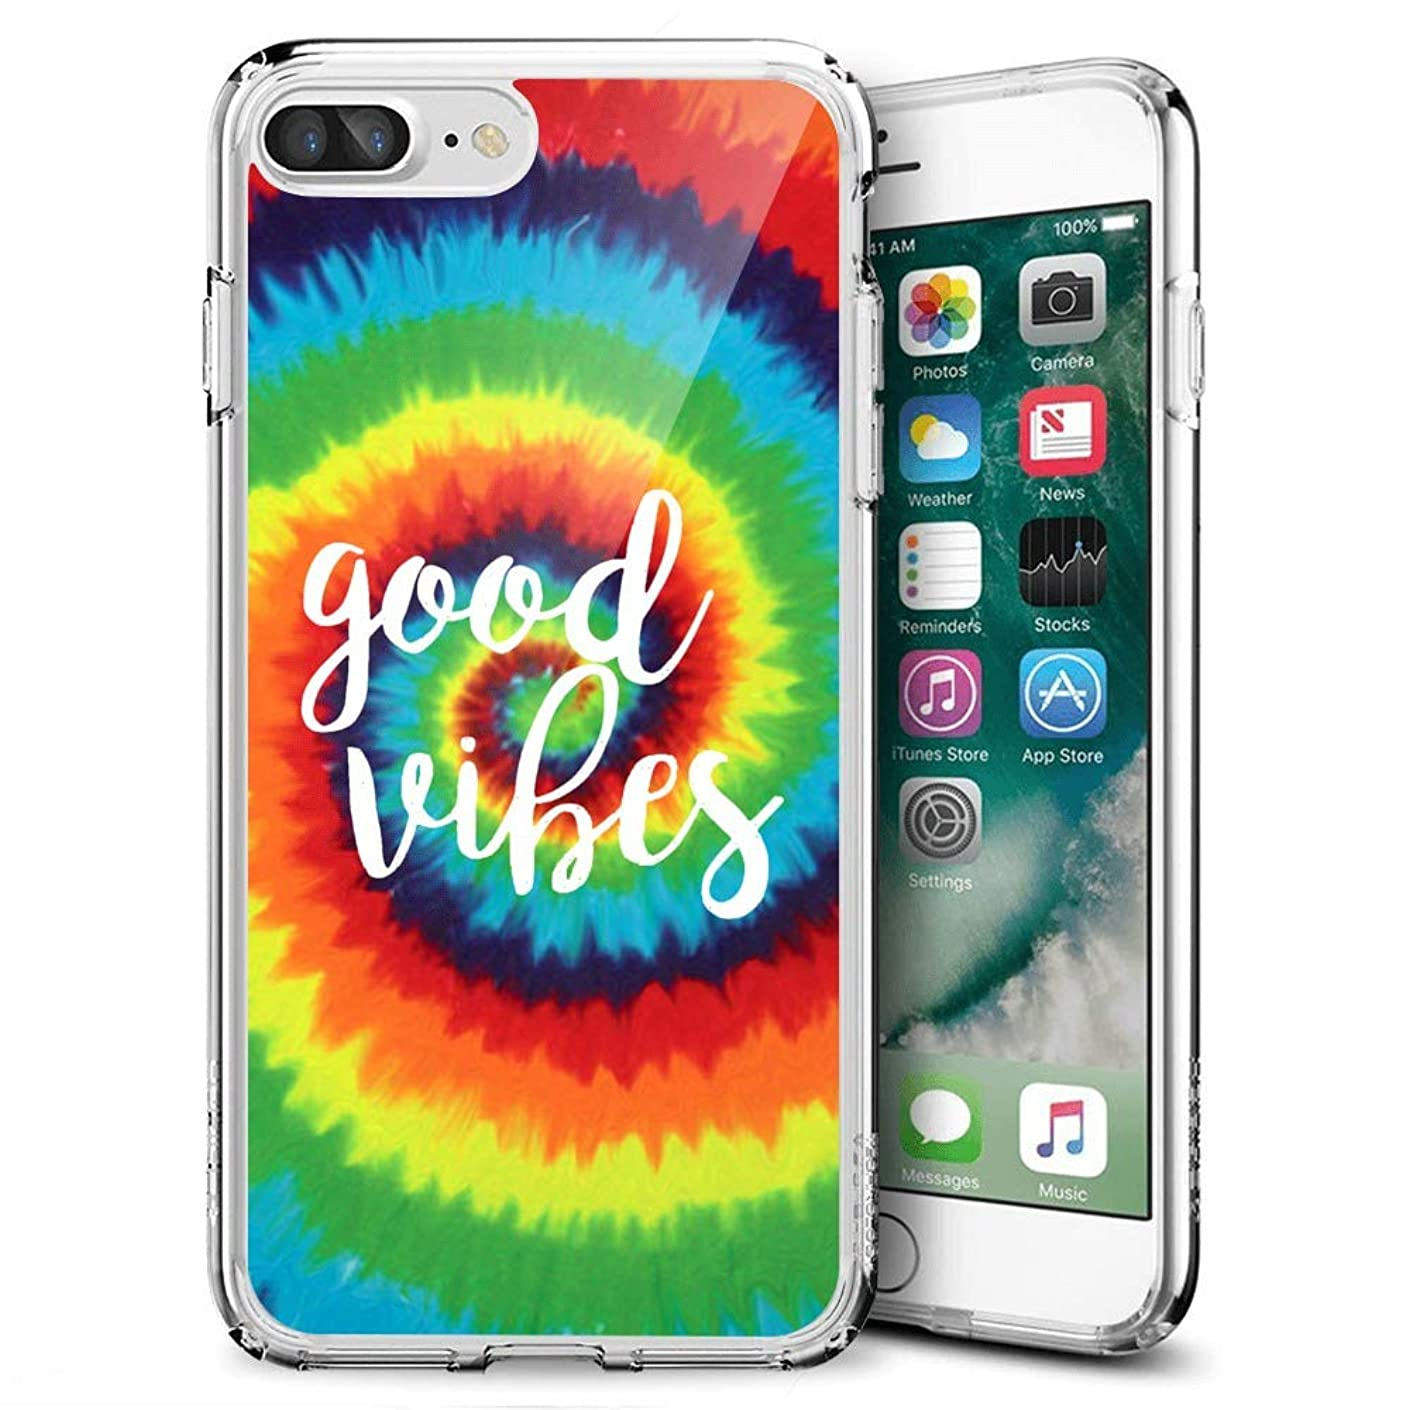 cosdesign Clear iPhone 7 8 Plus Case Tie-Dyed Ultra Thin Slim Shockproof Women Protective Cover Case for iPhone 7 8 Plus